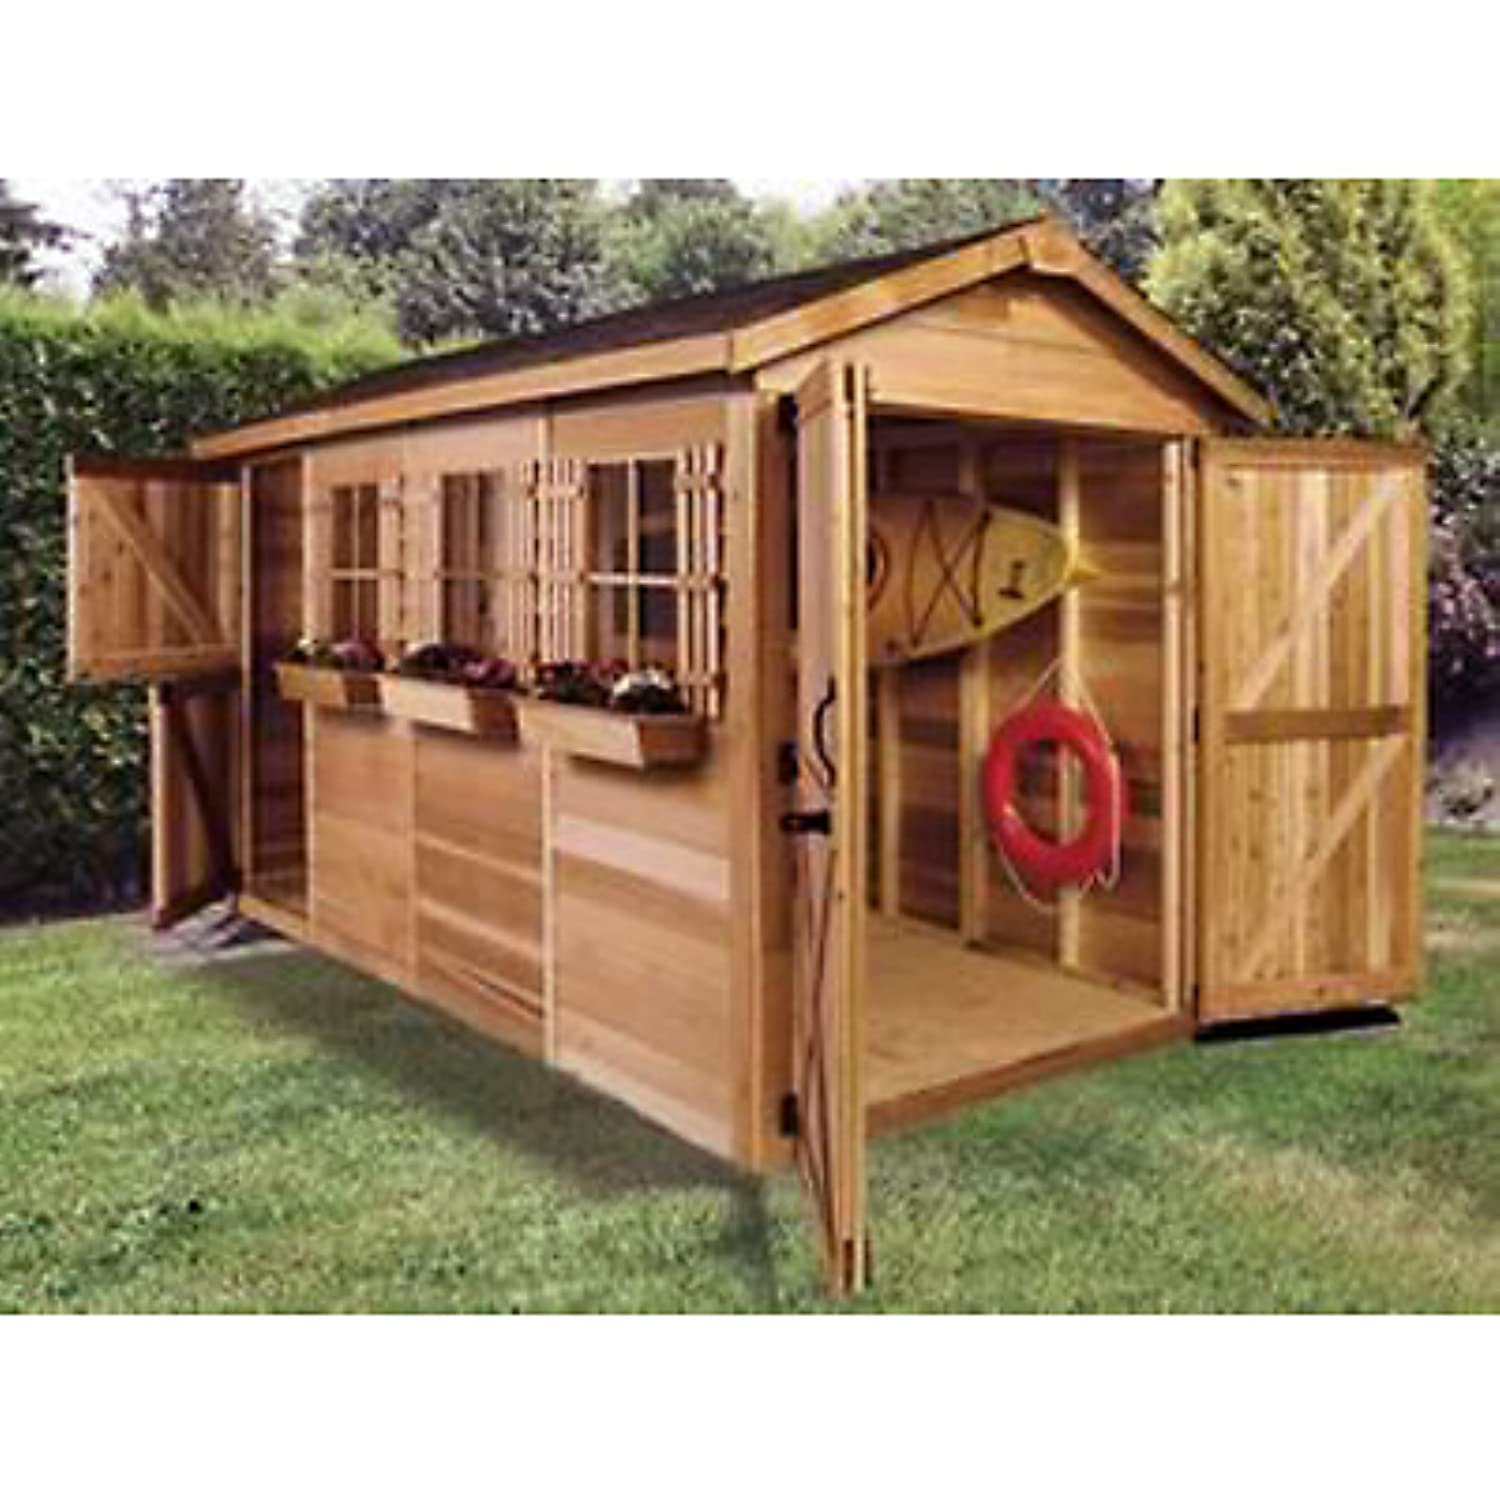 amazoncom cedar shed 12 x 6 ft boathouse garden shed home improvement